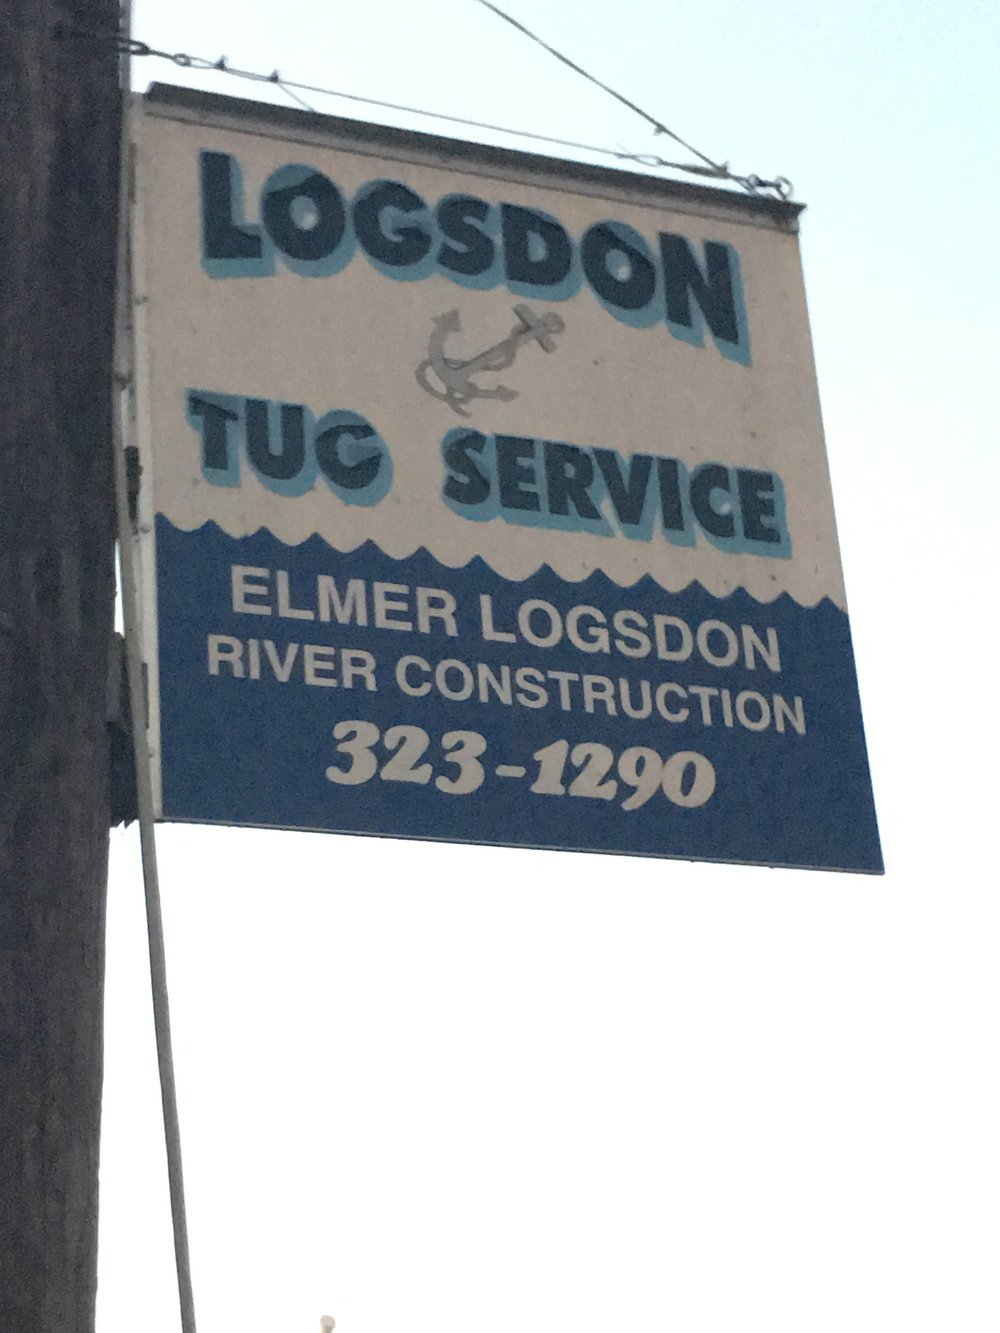 Logston Tug is exactly what it's name says it is, a tug service.